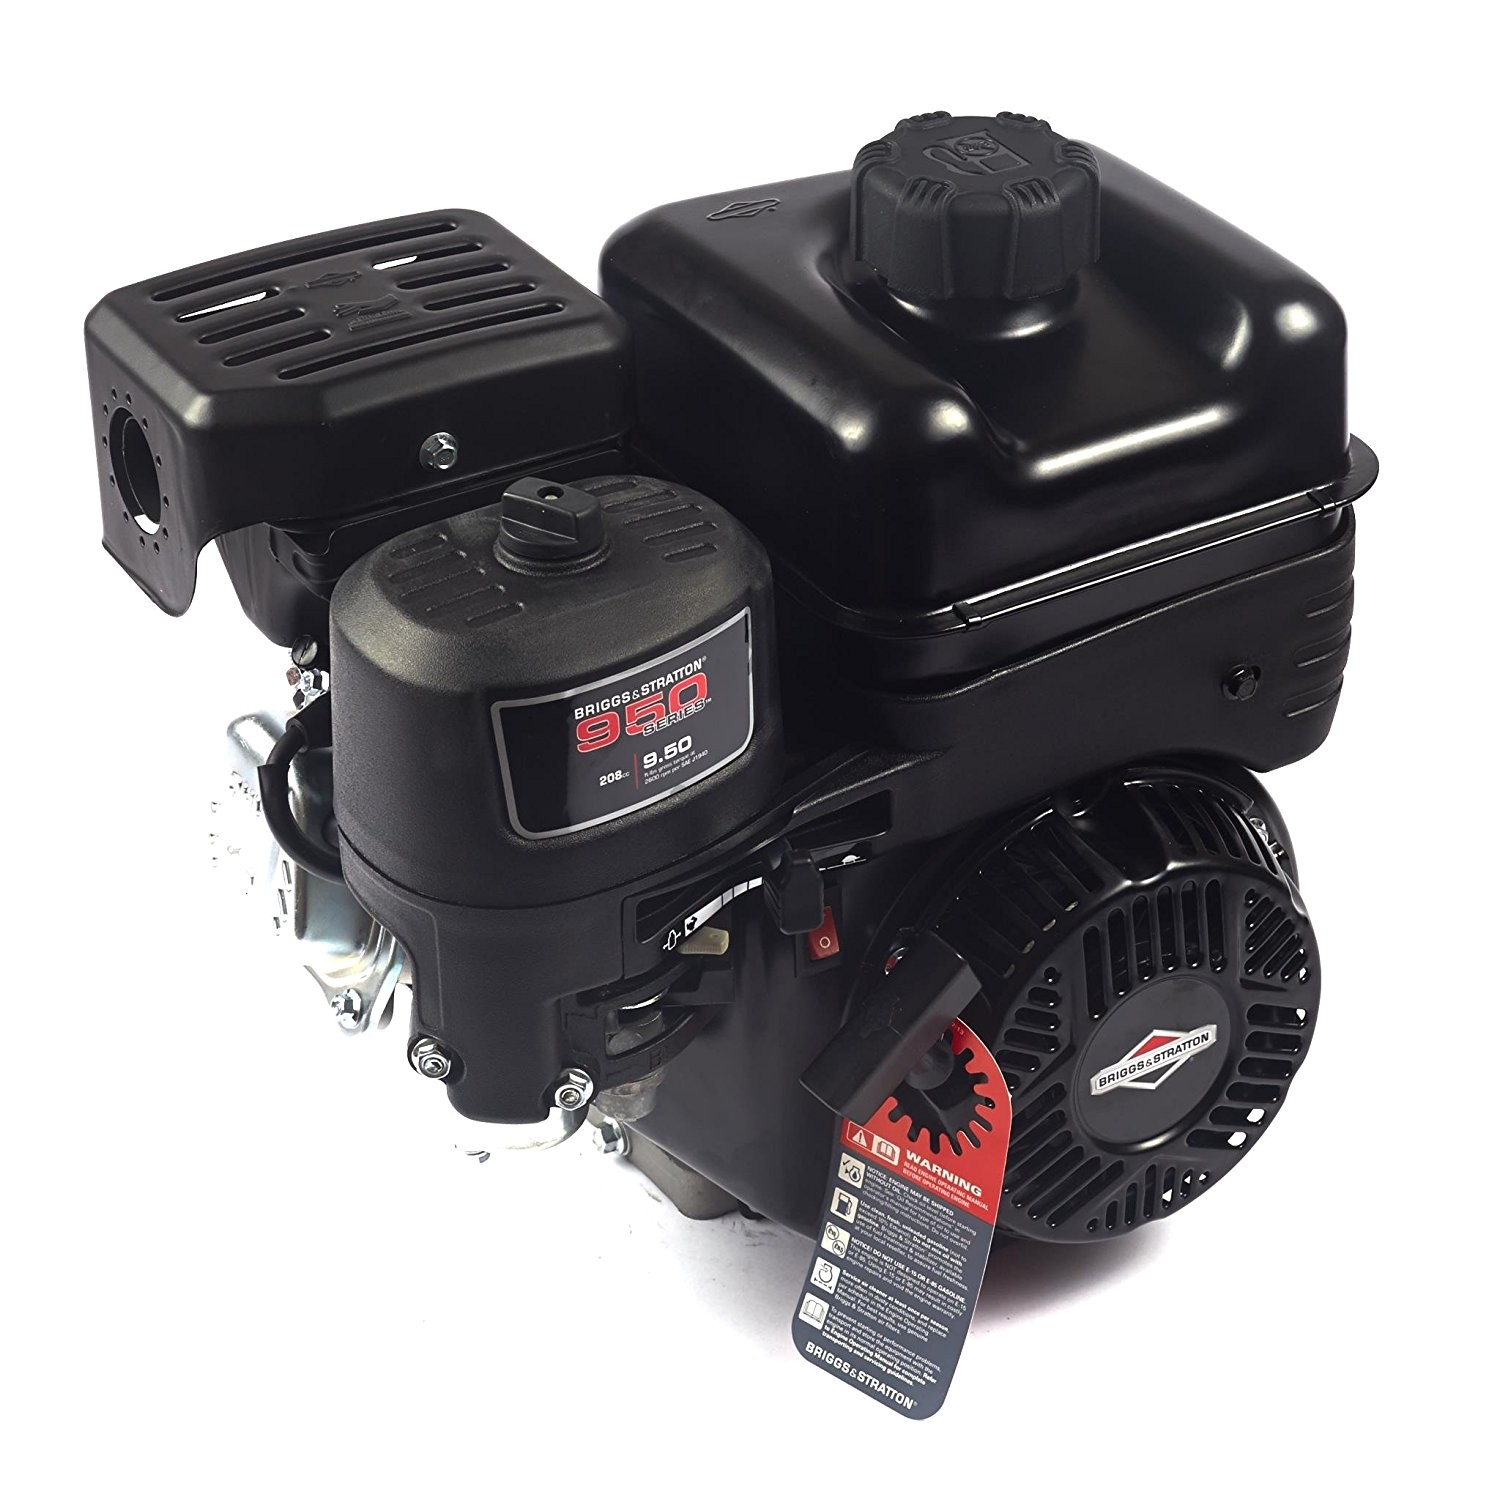 Briggs and Stratton Serial Number Year Briggs Stratton 950 Series Ohv Engine Bsxr950 Bmi Karts and Parts